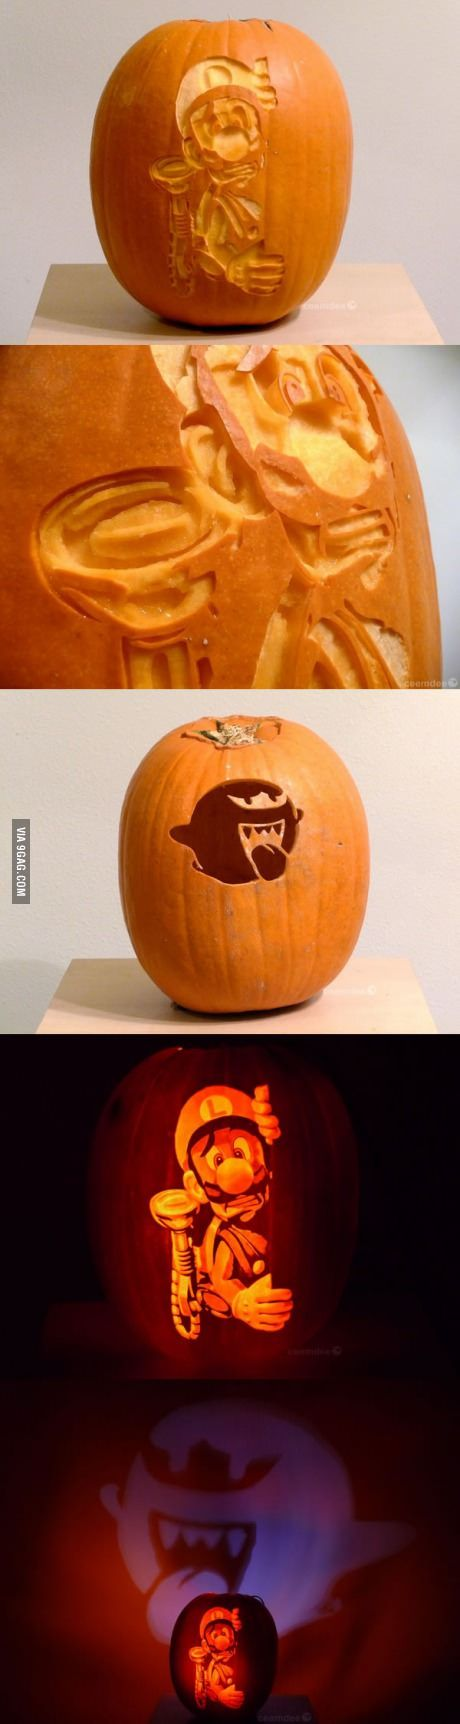 Luigi's Mansion. Awesome Jack-o-Lantern